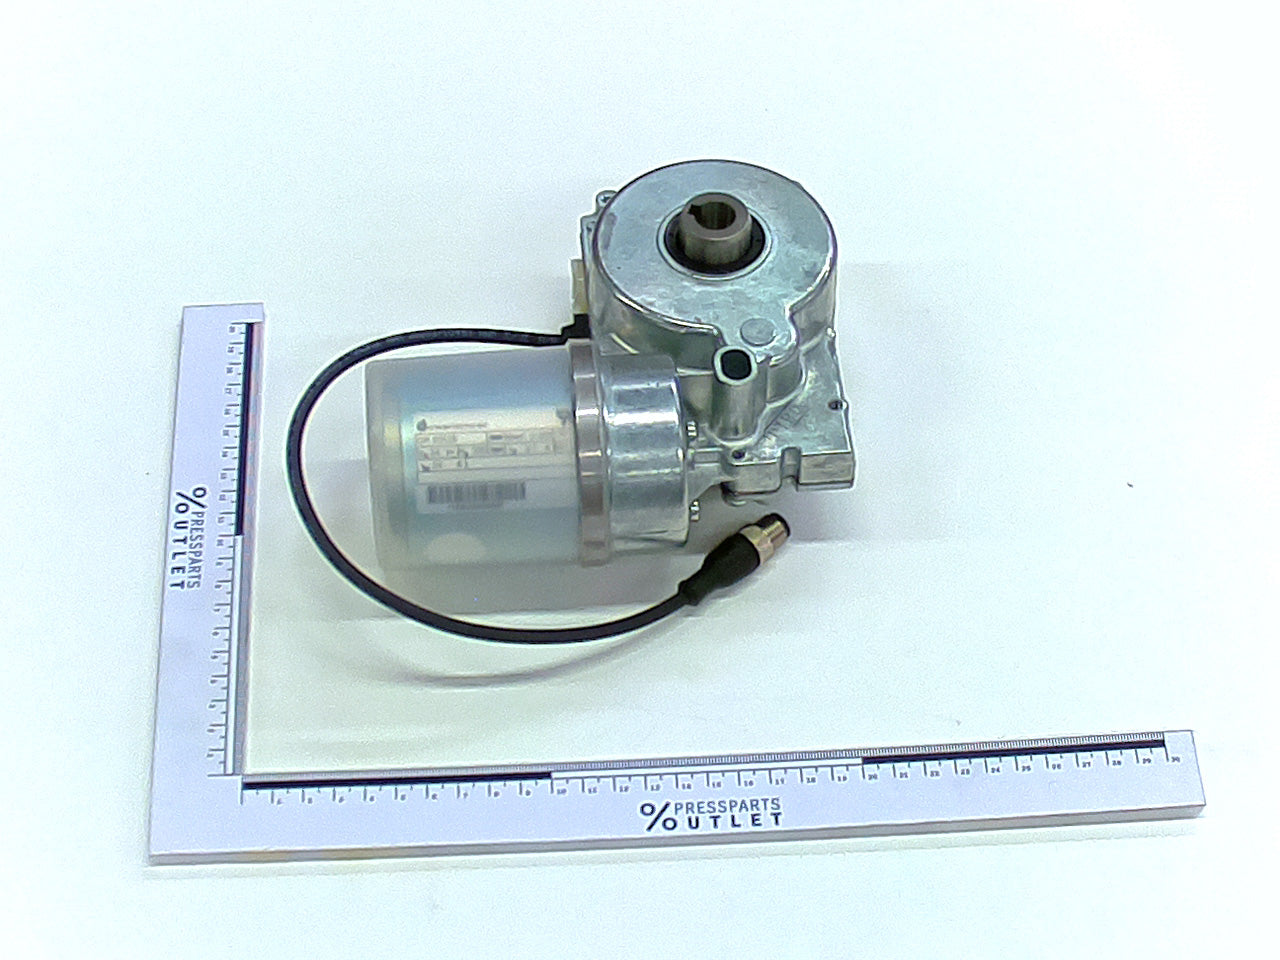 Servo-drive 20Nm 8rpm ipot=1 2mm - 91.105.1171/08 - Stellantrieb 20Nm 8rpm ipot=1 2mm